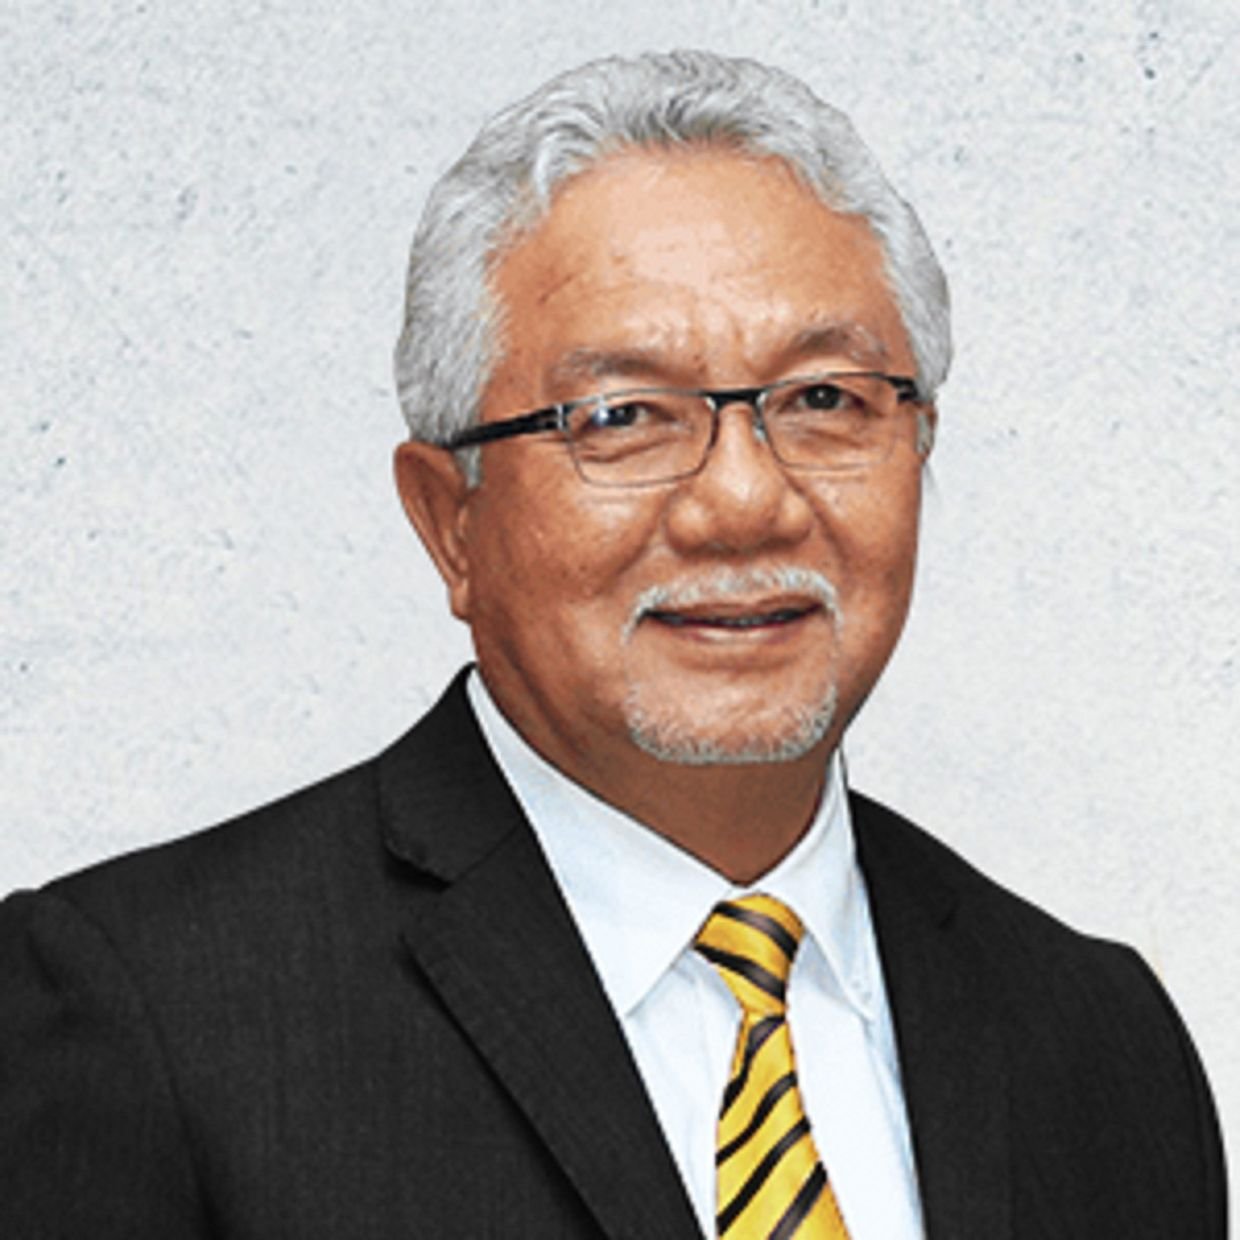 Maybank chairman, Tan Sri Zamzamzairani Mohd Isa said given the improvement in the 3Q results, Maybank has decided to continue with its practice to pay an interim dividend to shareholders, albeit at a lower rate compared to the past owing to the impact of the Covid-19 pandemic.